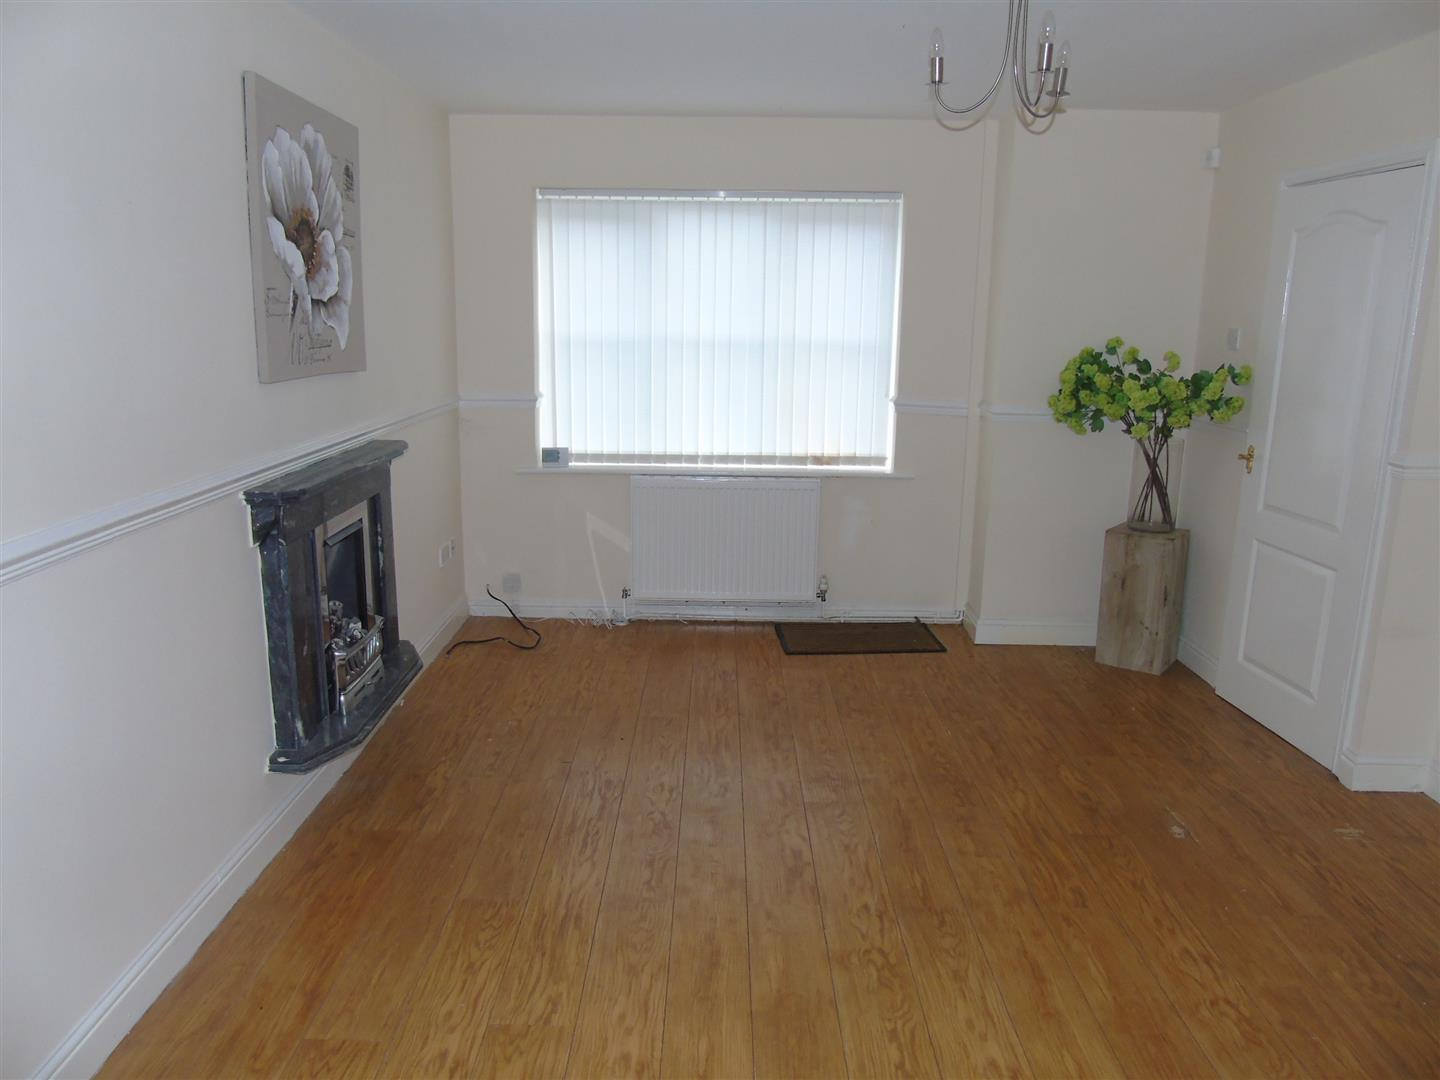 3 Bedrooms, House - End Town House, Longdown Road, Liverpool